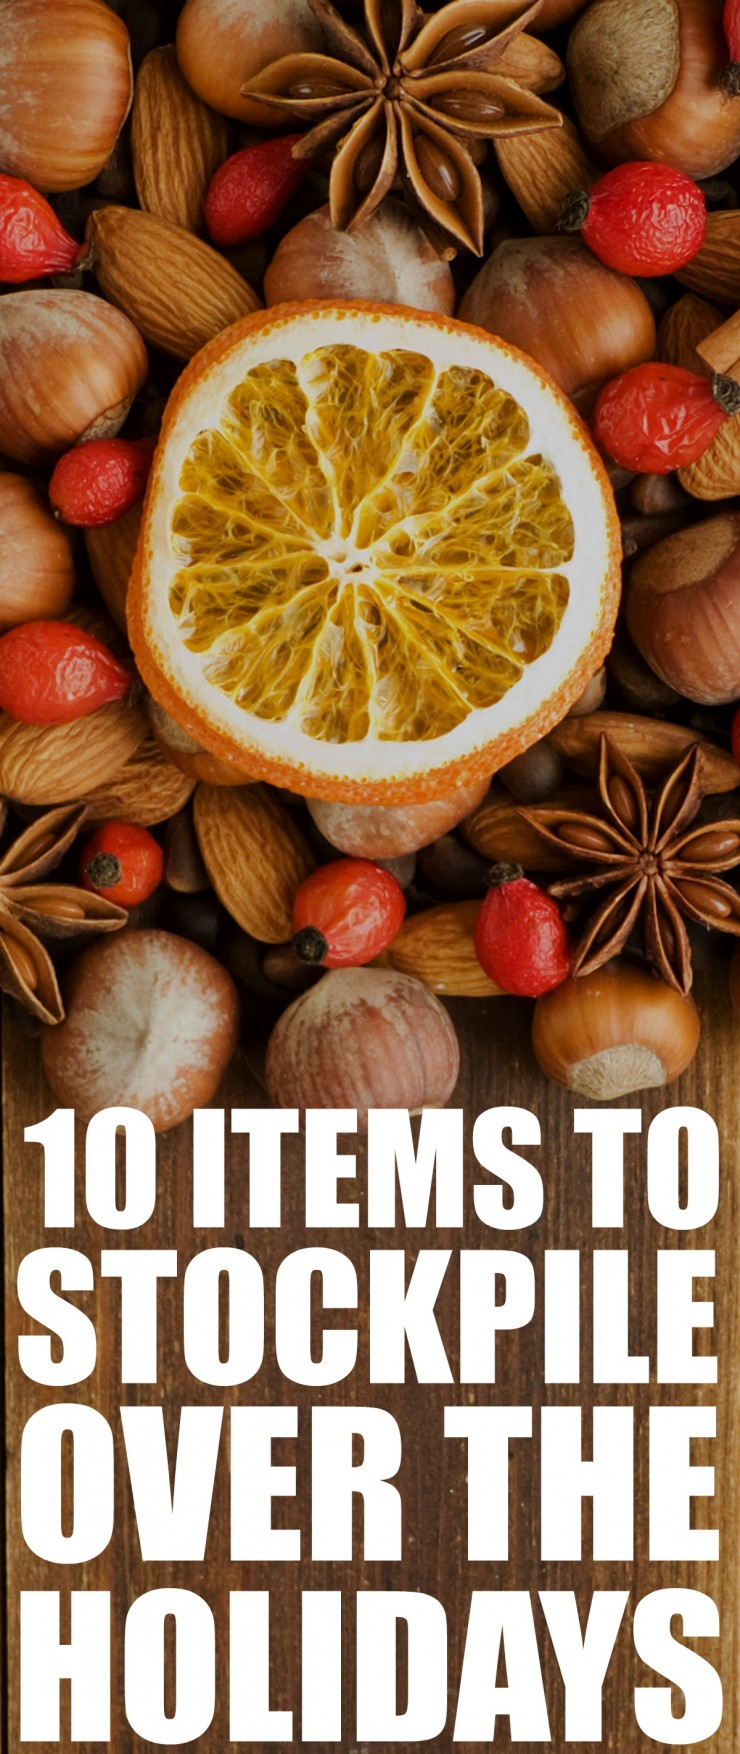 10 Pantry Items to Stockpile Over the Holidays